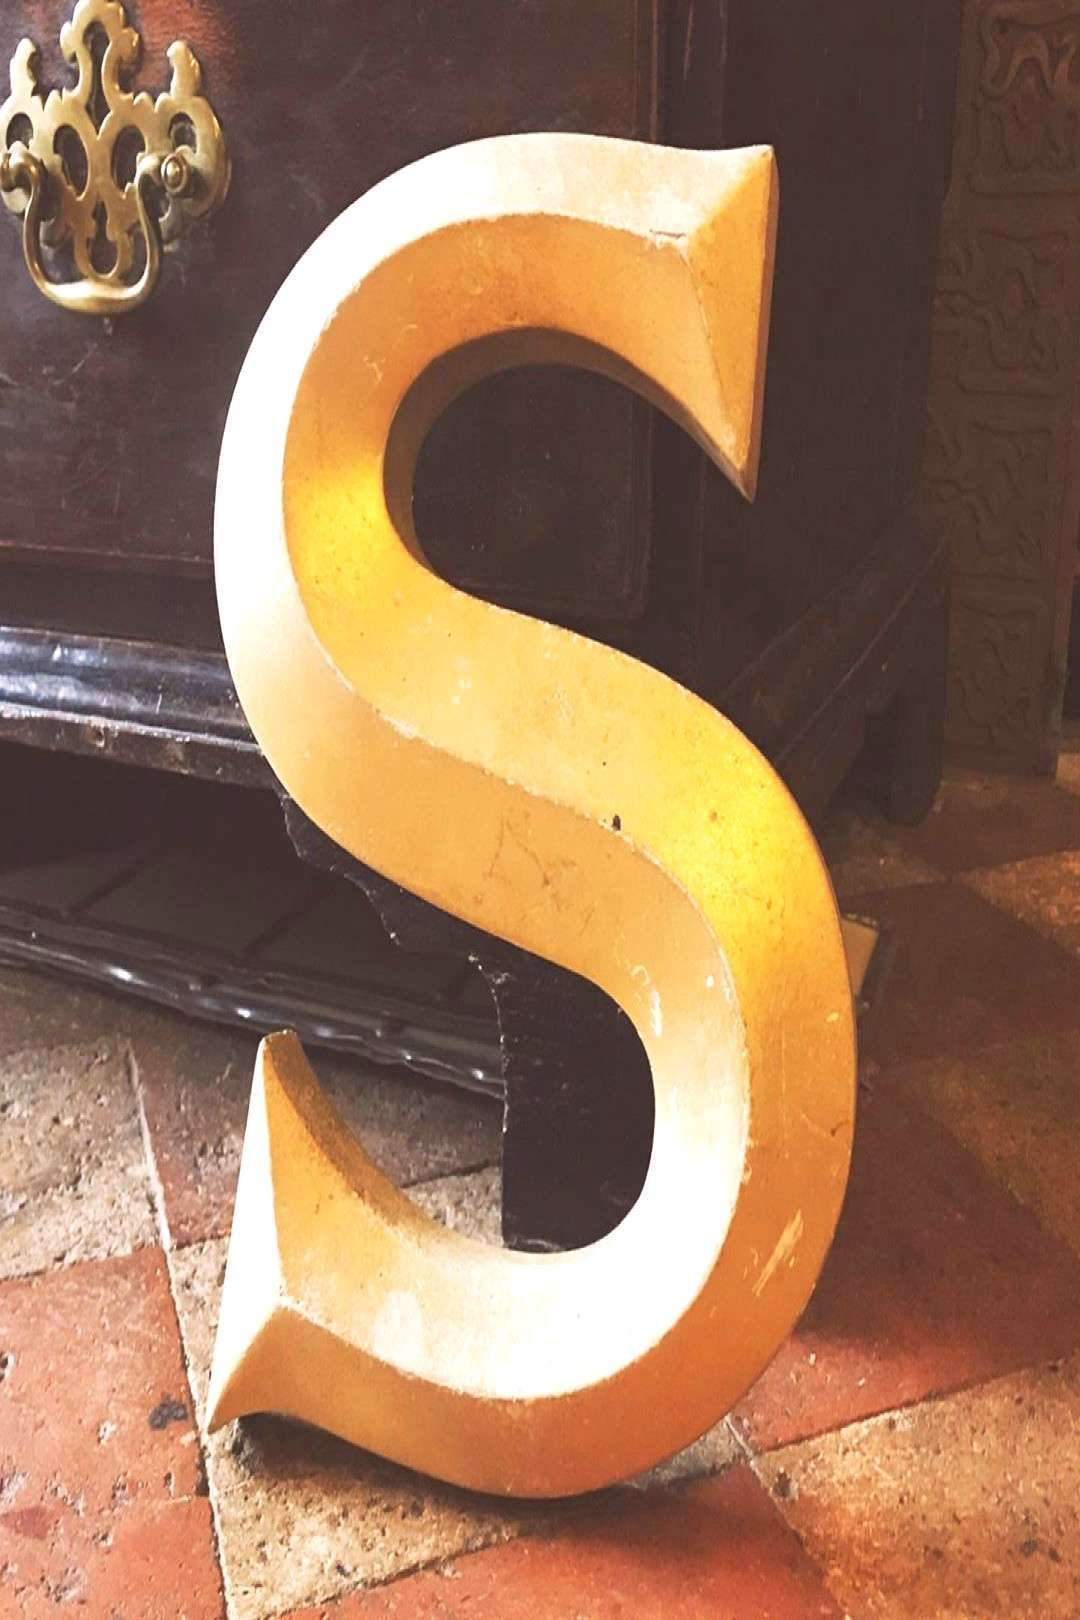 February Antiques Stirling Capital Letters 222020 25cms Stuff Photo 1950s Worn Gold Sign High Pub Capita In 2020 Pub Signs Shabby Chic Decor Letter Sign